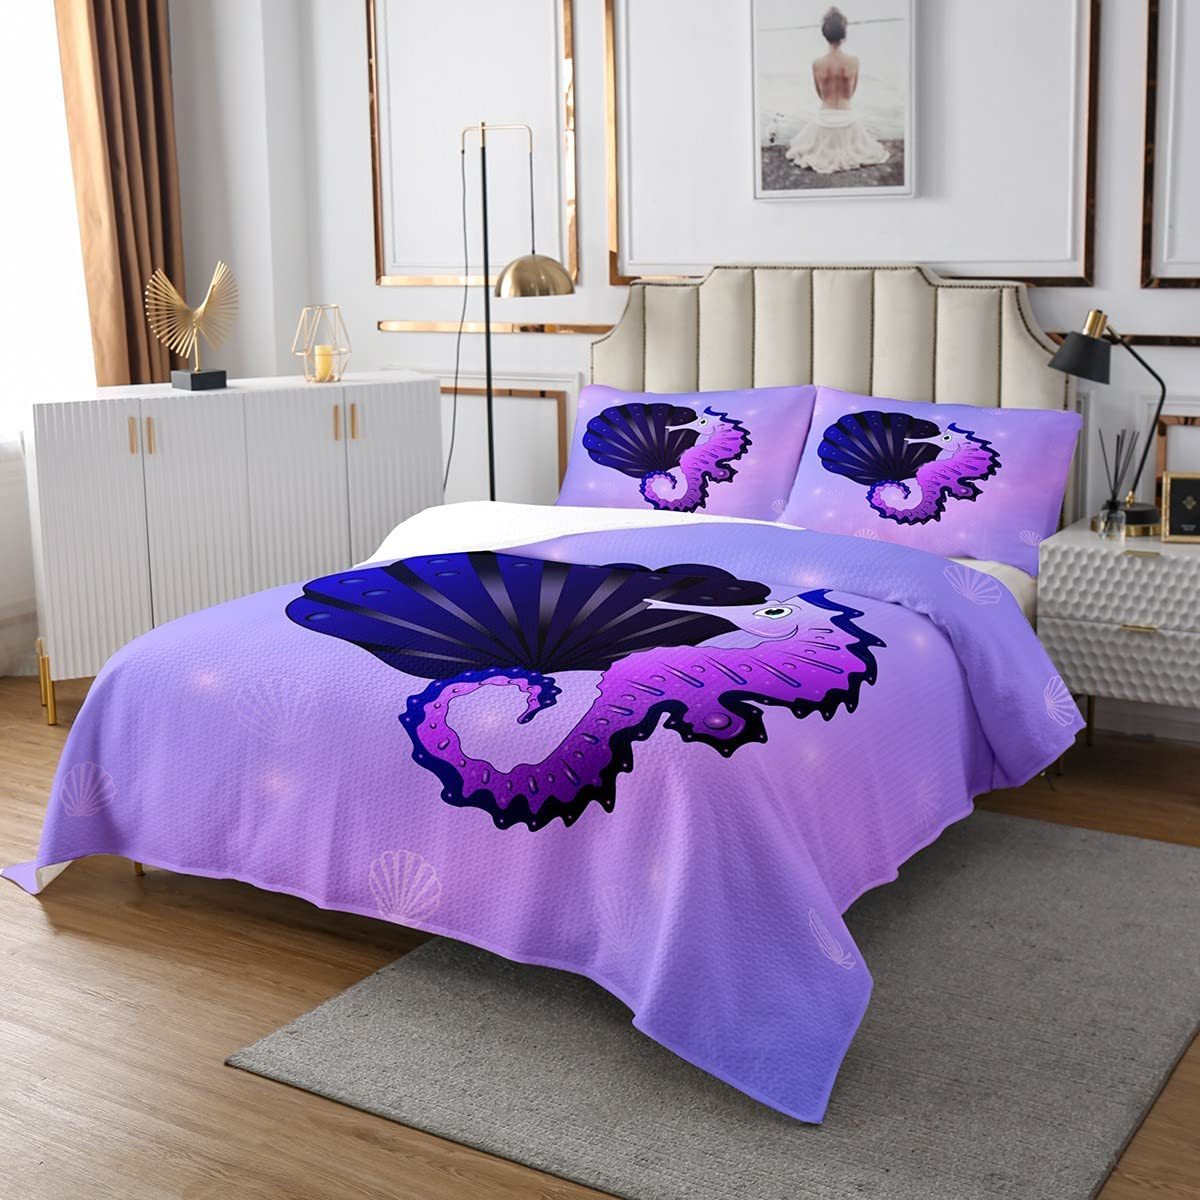 Cartoon Seahorse Bedspread Seashell Quilted Kids security Bo Coverlet for Max 51% OFF